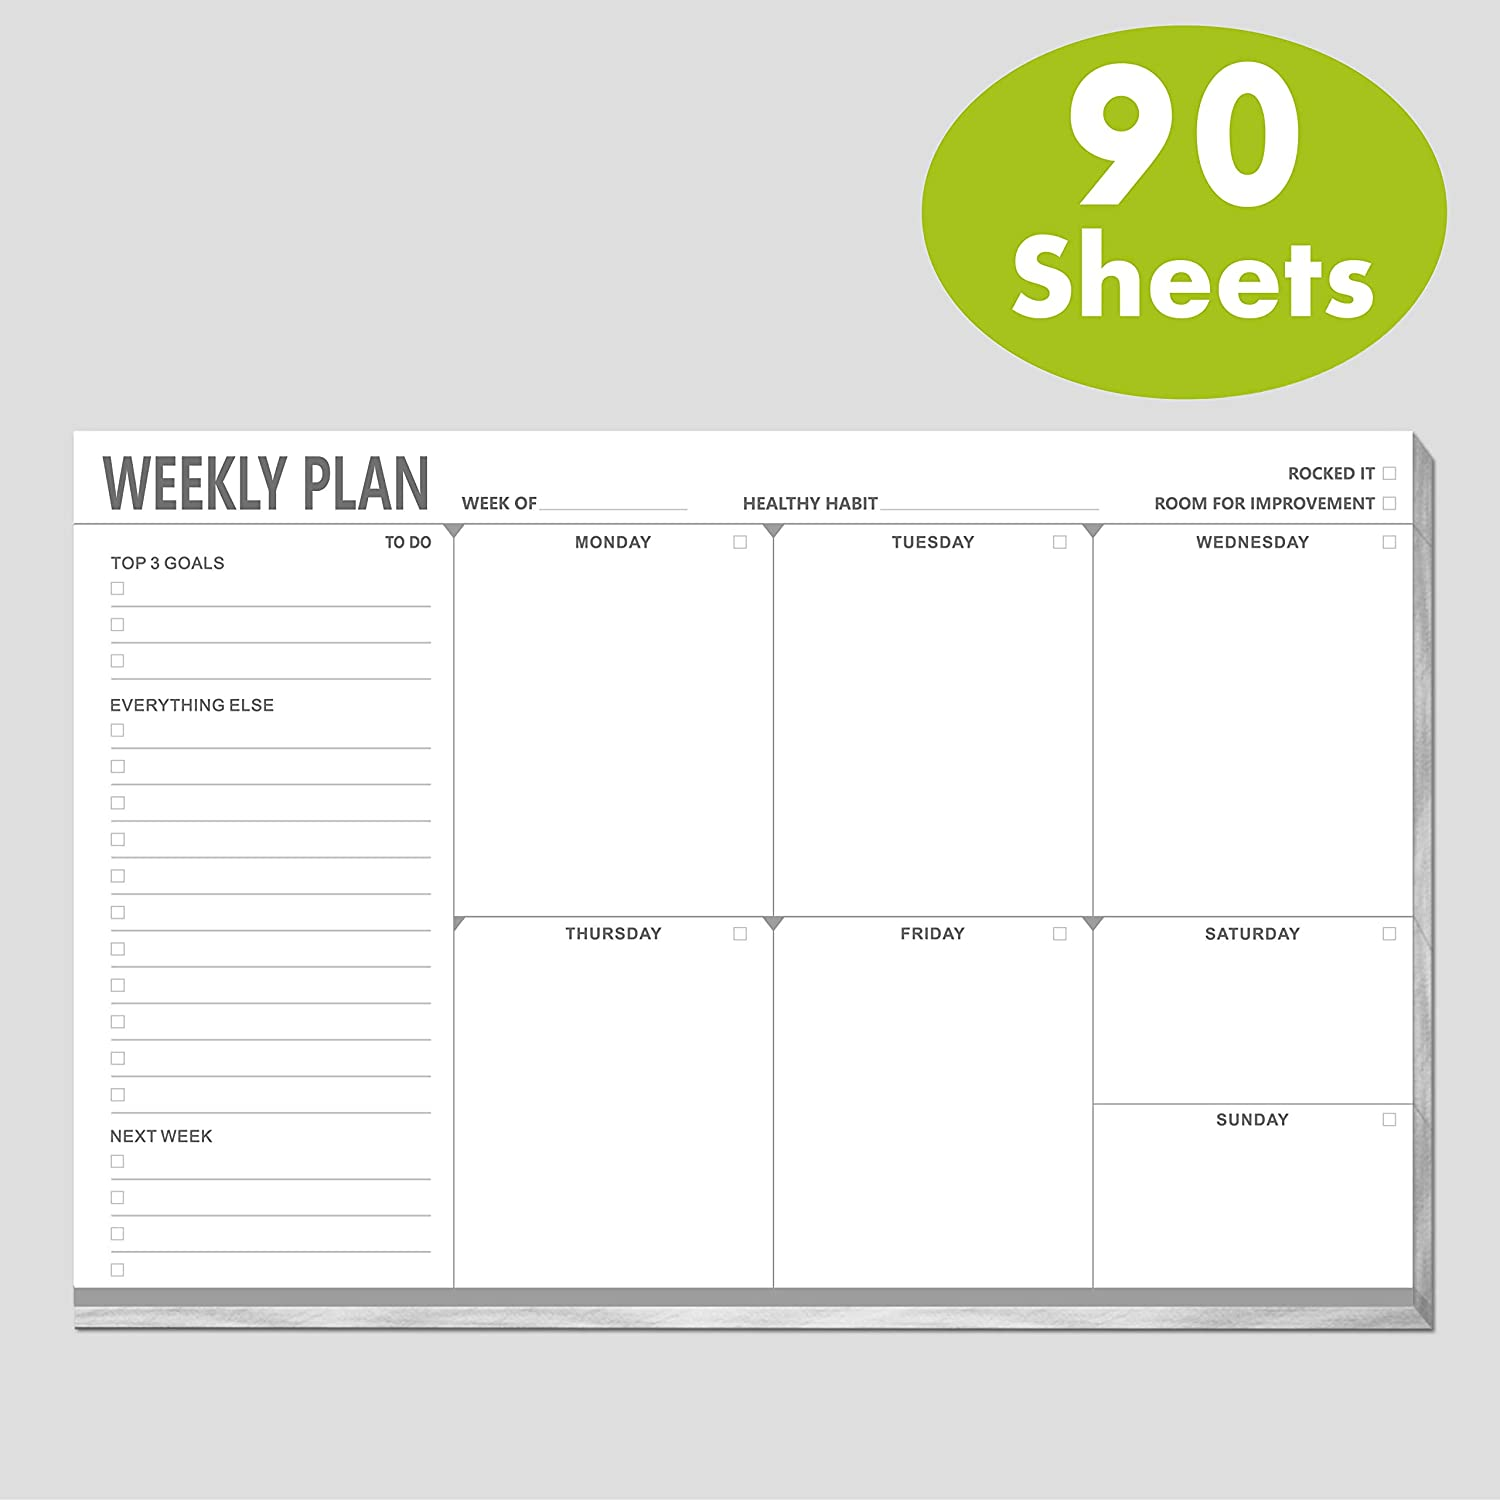 "Weekly Planner Desktop List Note Pad to Do List with Habit Tracker and Magnet Mountings for Fridge Locker (90 Sheets 9"" x 6"")"